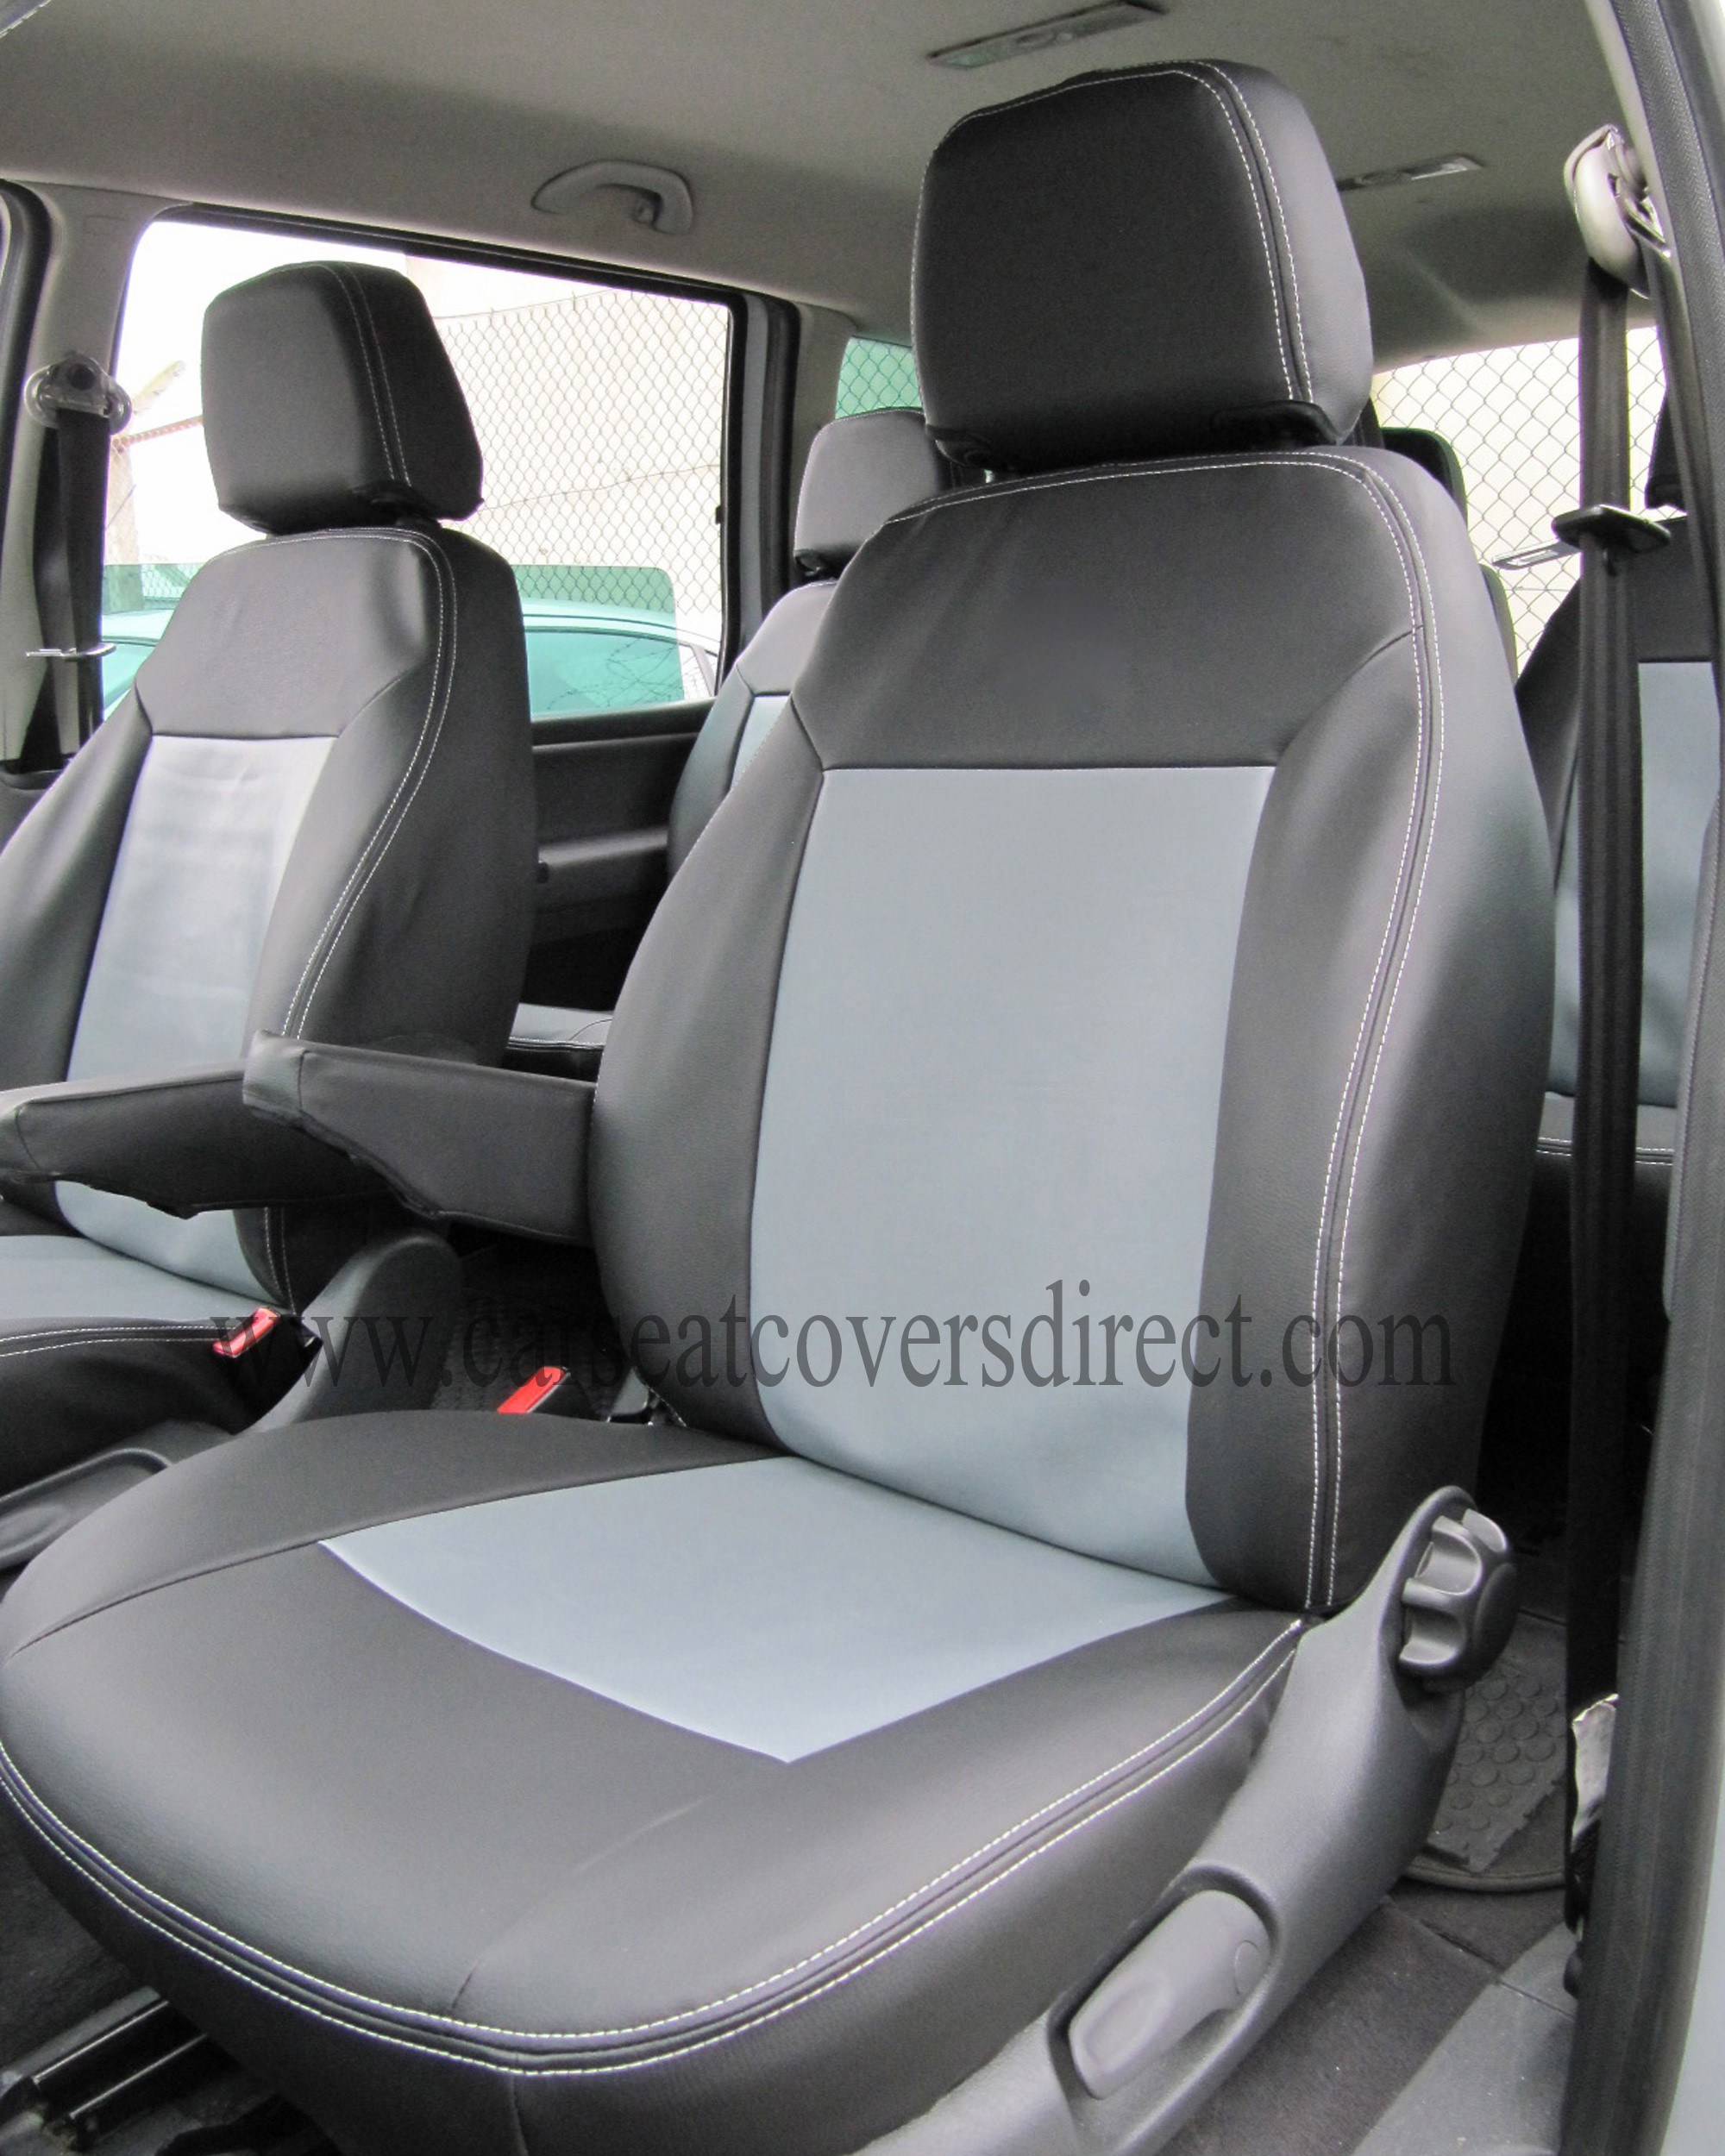 Search Results For Ford Car Seat Covers Direct